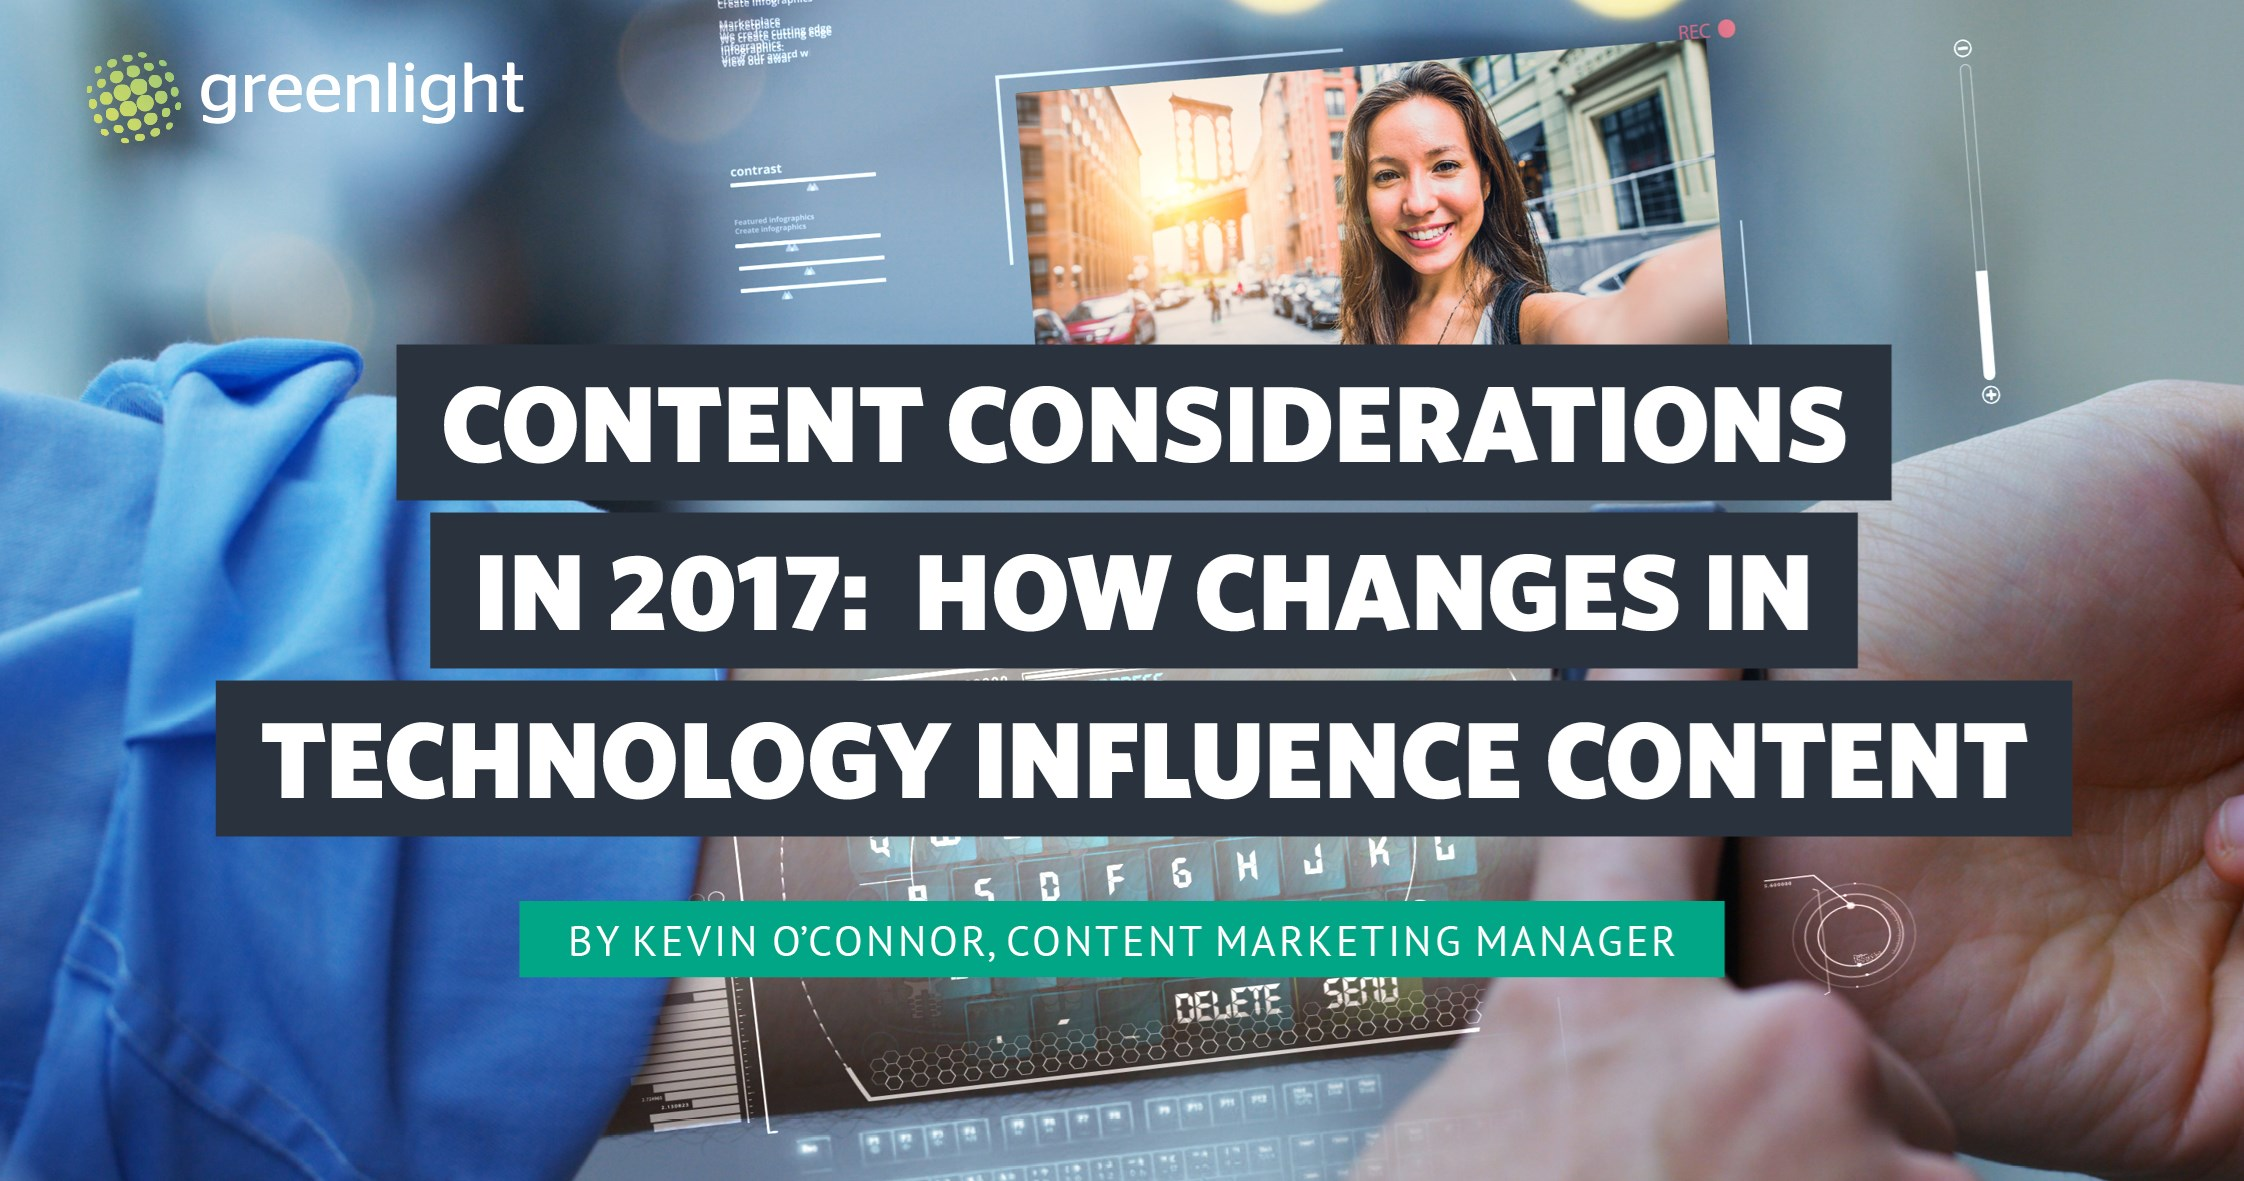 Content Considerations in 2017: How Changes In Technology Influence Content